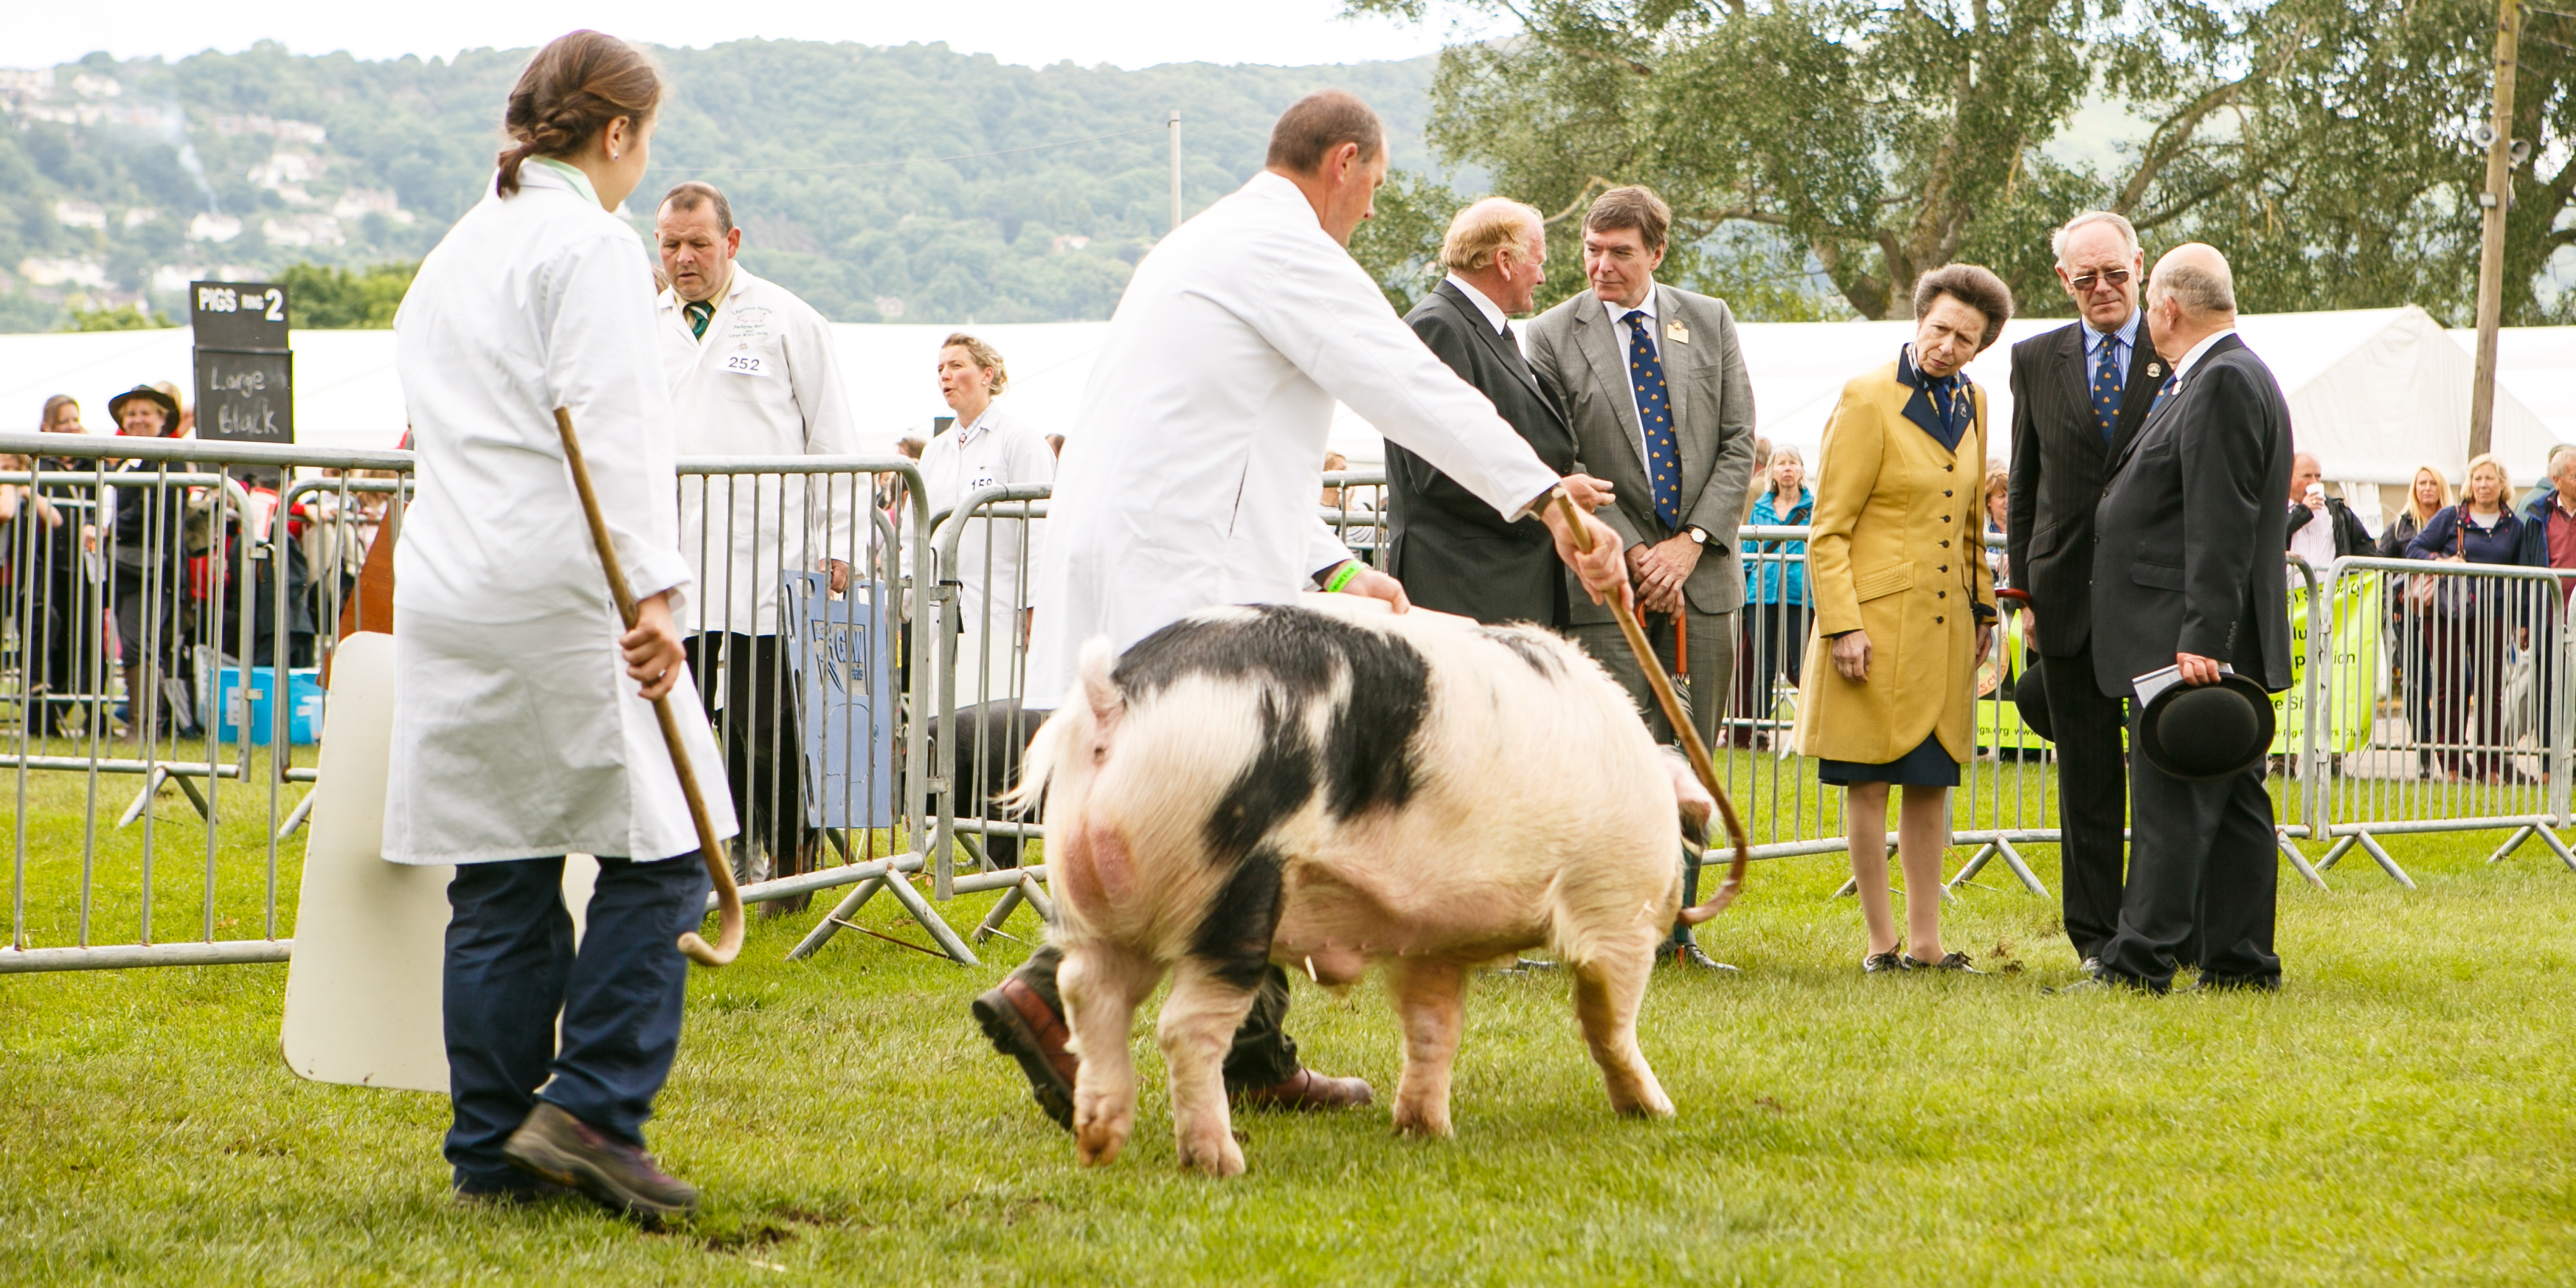 The Princess Royal at the Royal Three Counties Show